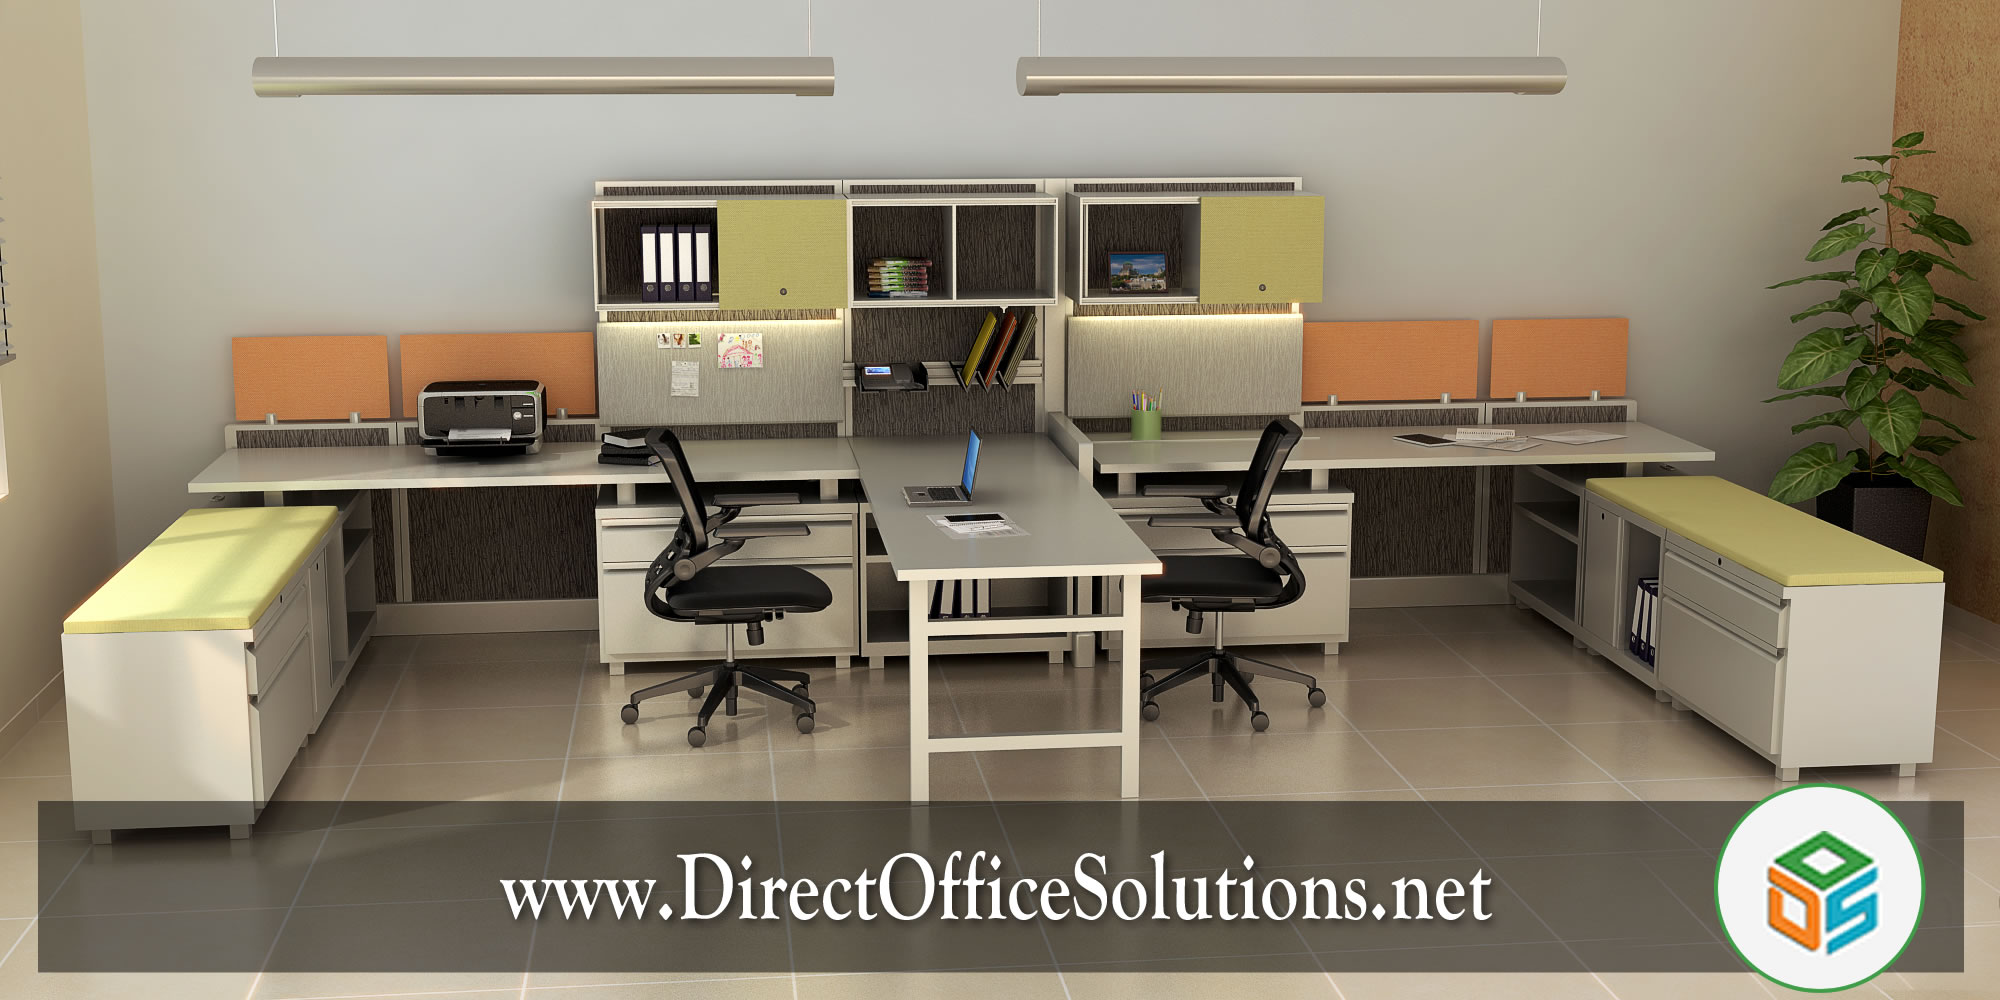 Direct Office Solutions image 1